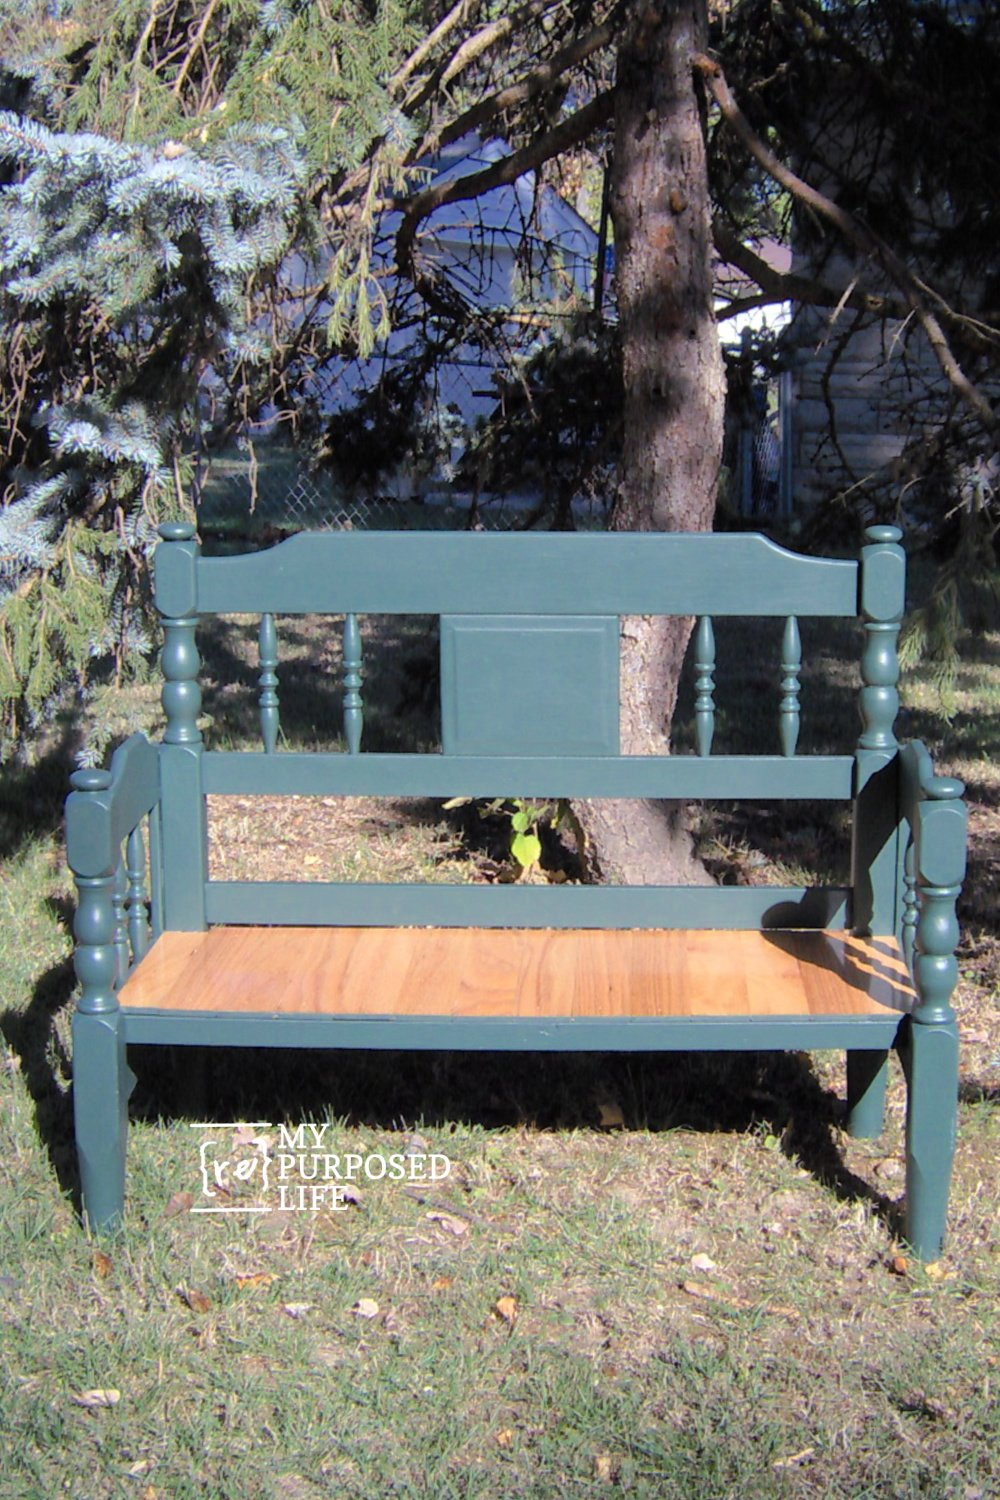 If you have been wanting to make a headboard bench, but have been intimidated by the process, this might be just what you've been looking for! No special tools needed. Only a saw and a drill. #MyRepurposedLife #repurposed #headboard #bench #diy #easy via @repurposedlife